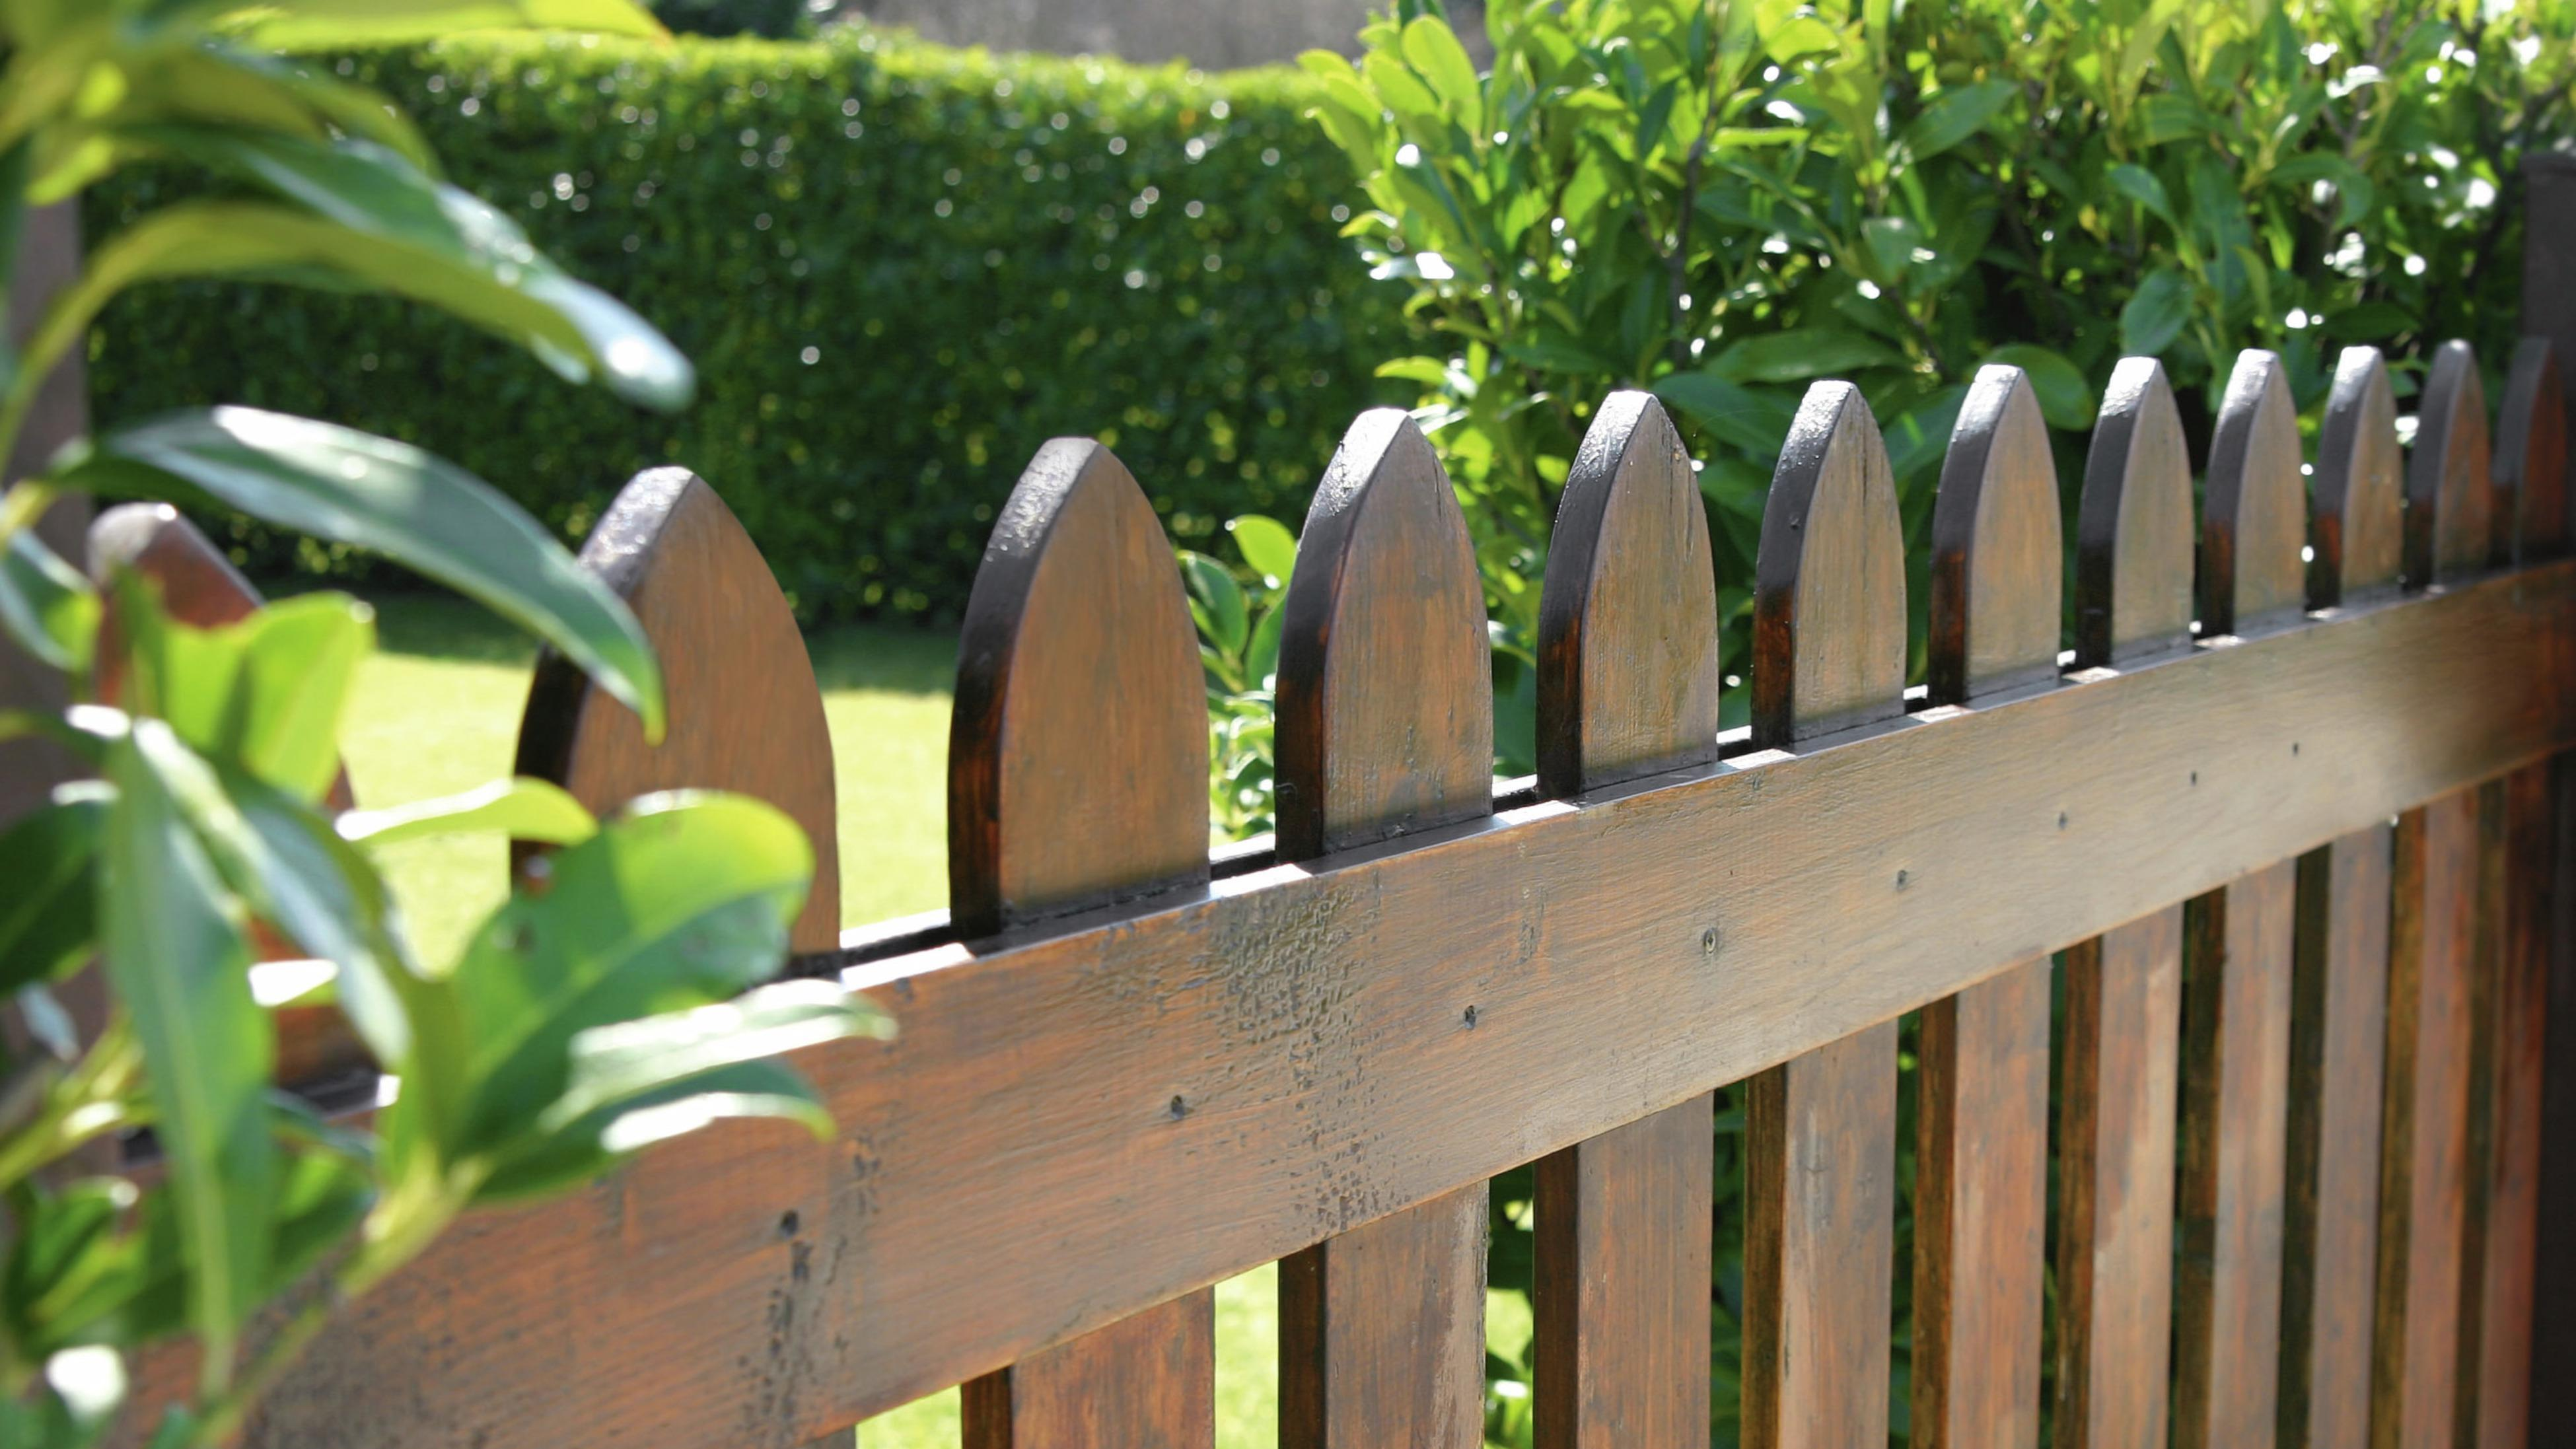 Close up of a Colorbond steel fence in a dark wood stain.